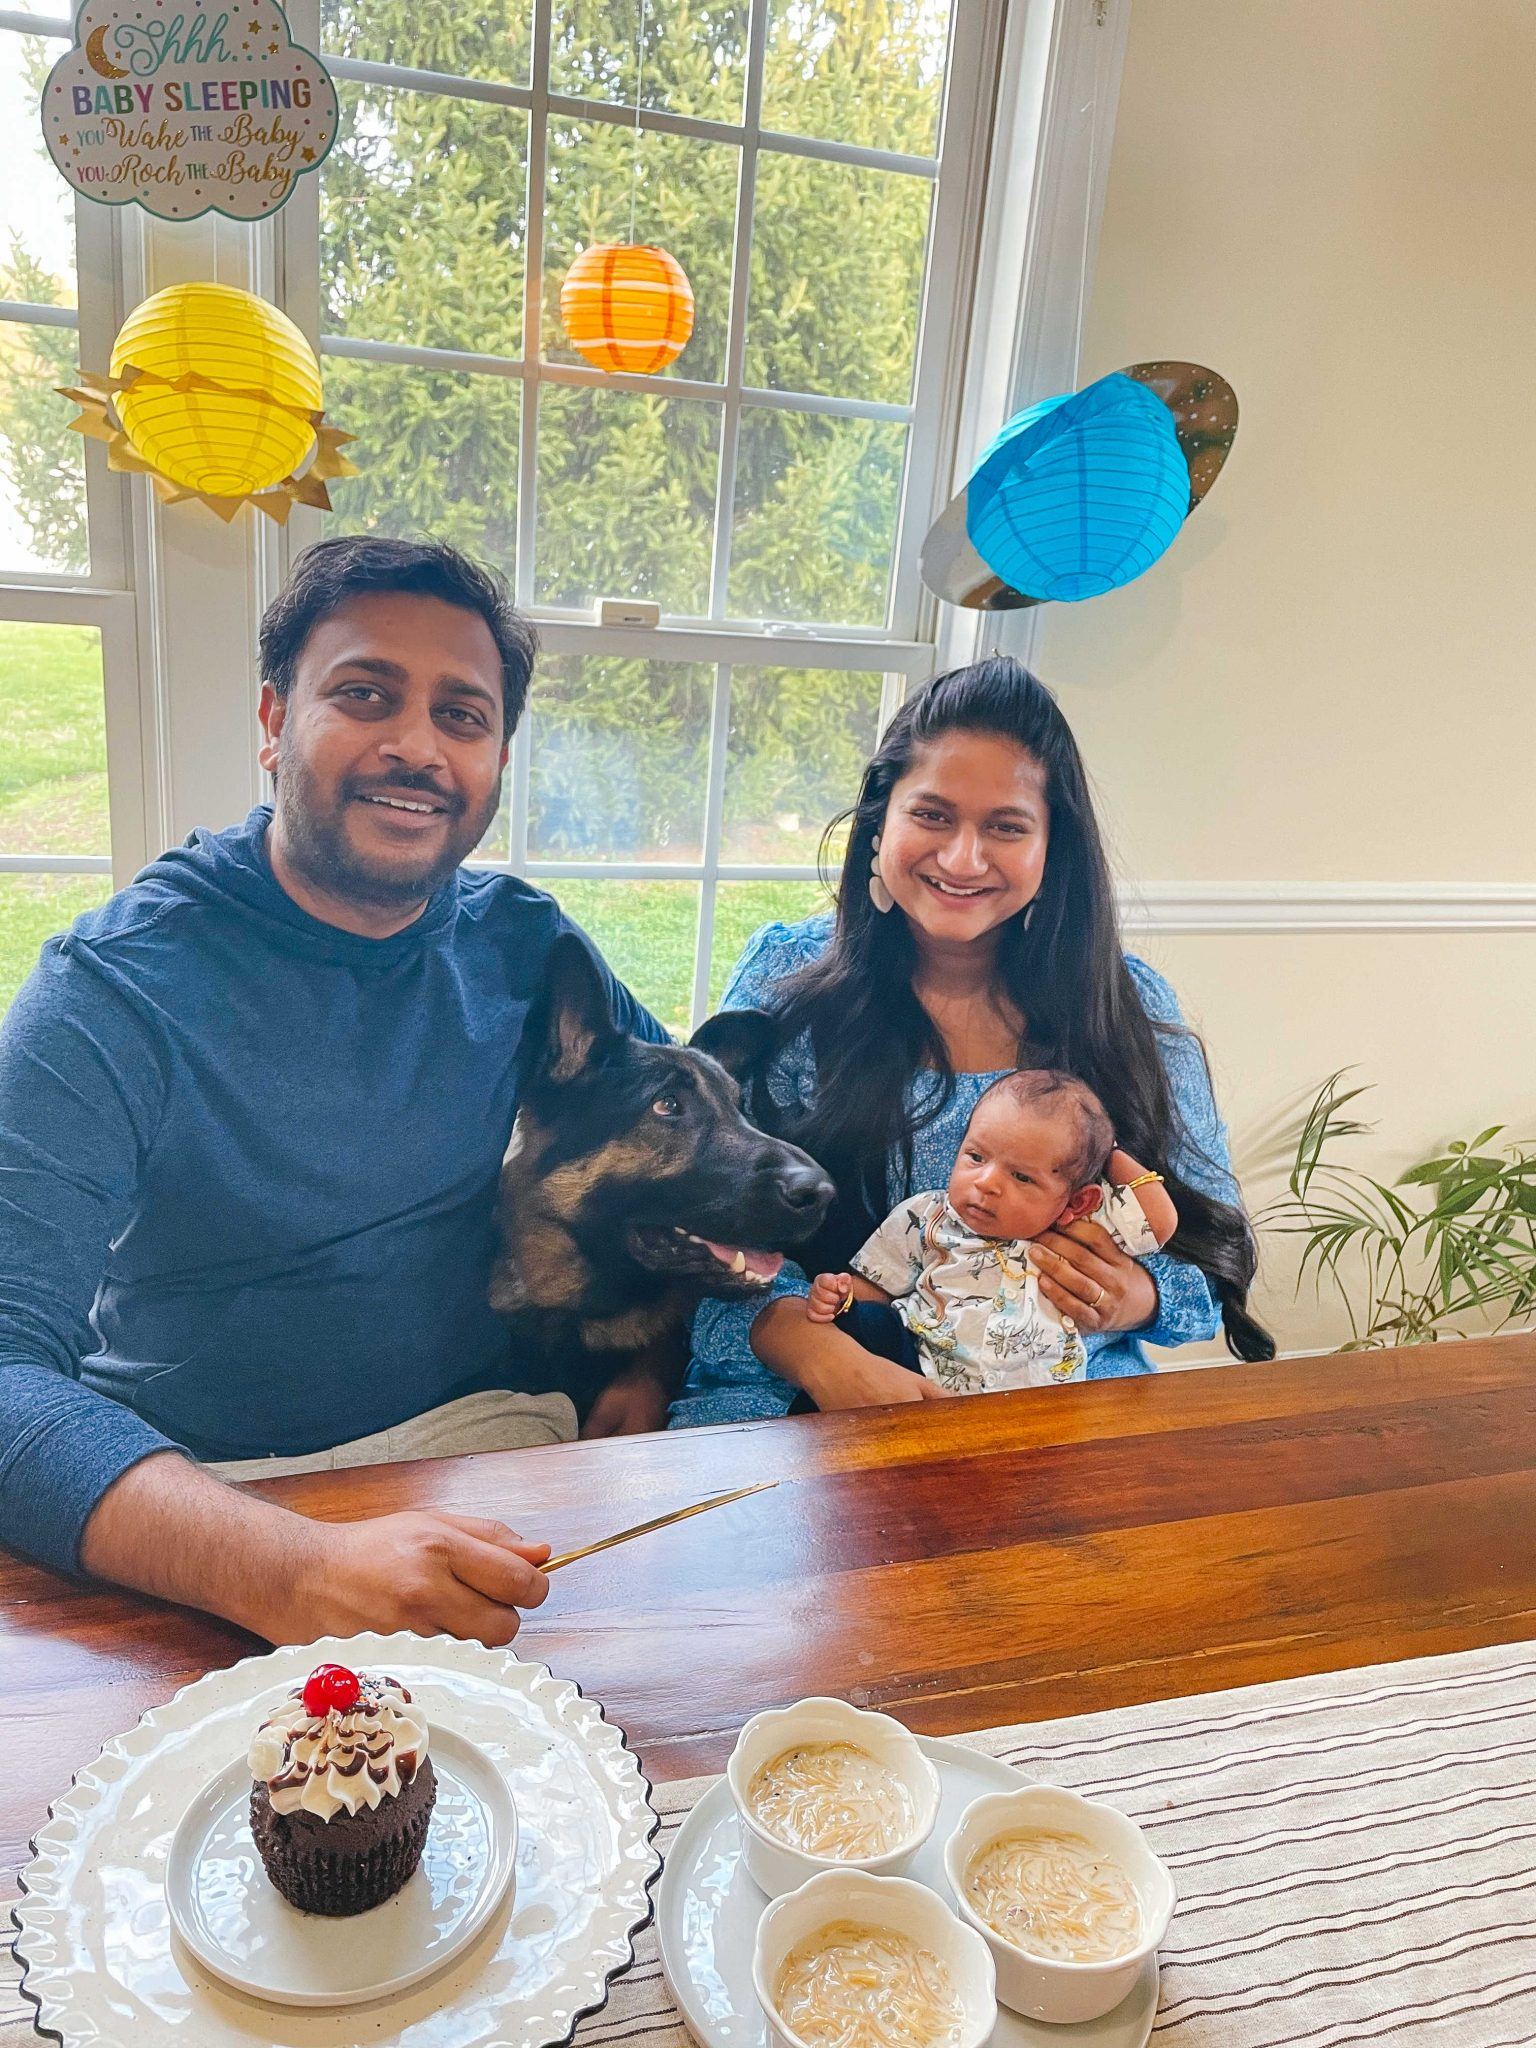 1 month with our baby boy Vihaan4 |1 Month Baby by popular Maryland motherhood blog, Dreaming Loud: image of a husband and wife sitting together and holding their 1 month old baby boy.